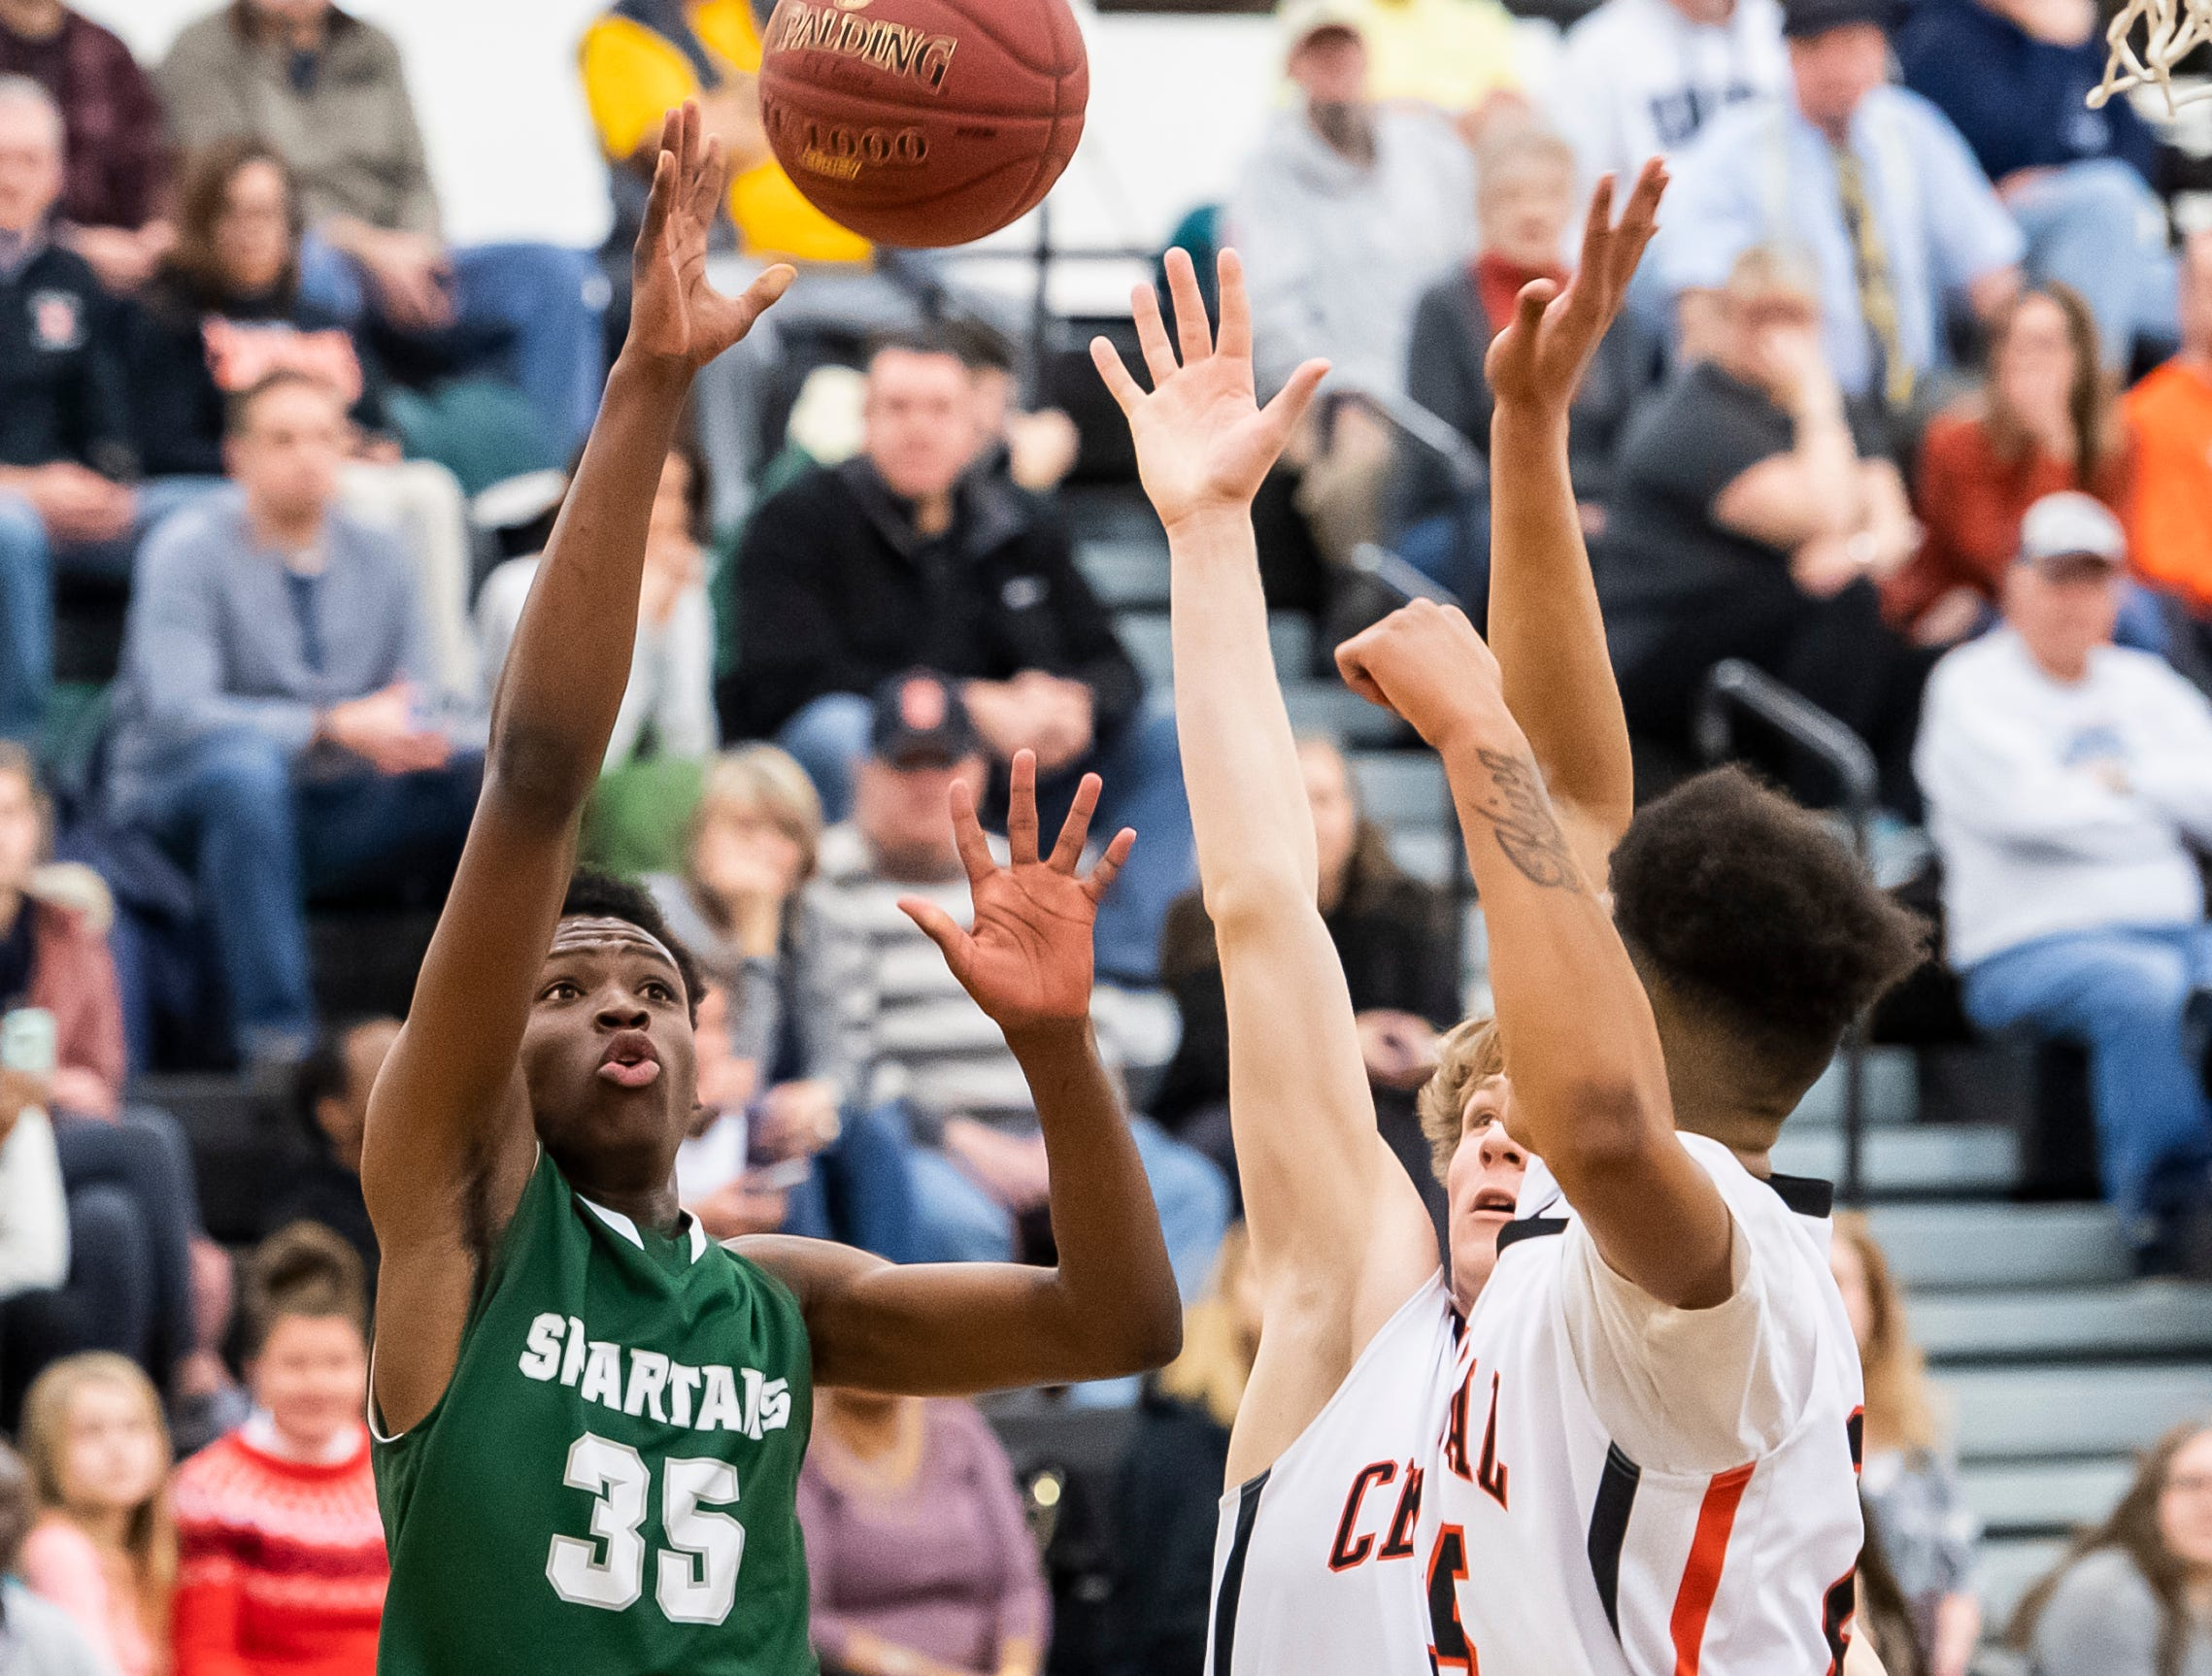 York County Tech's Jahkwan Batty shoots the ball during play against  Central York in a YAIAA quarterfinal game at Red Lion High School Saturday, February 9, 2019. Batty led the Spartans with 14 points.